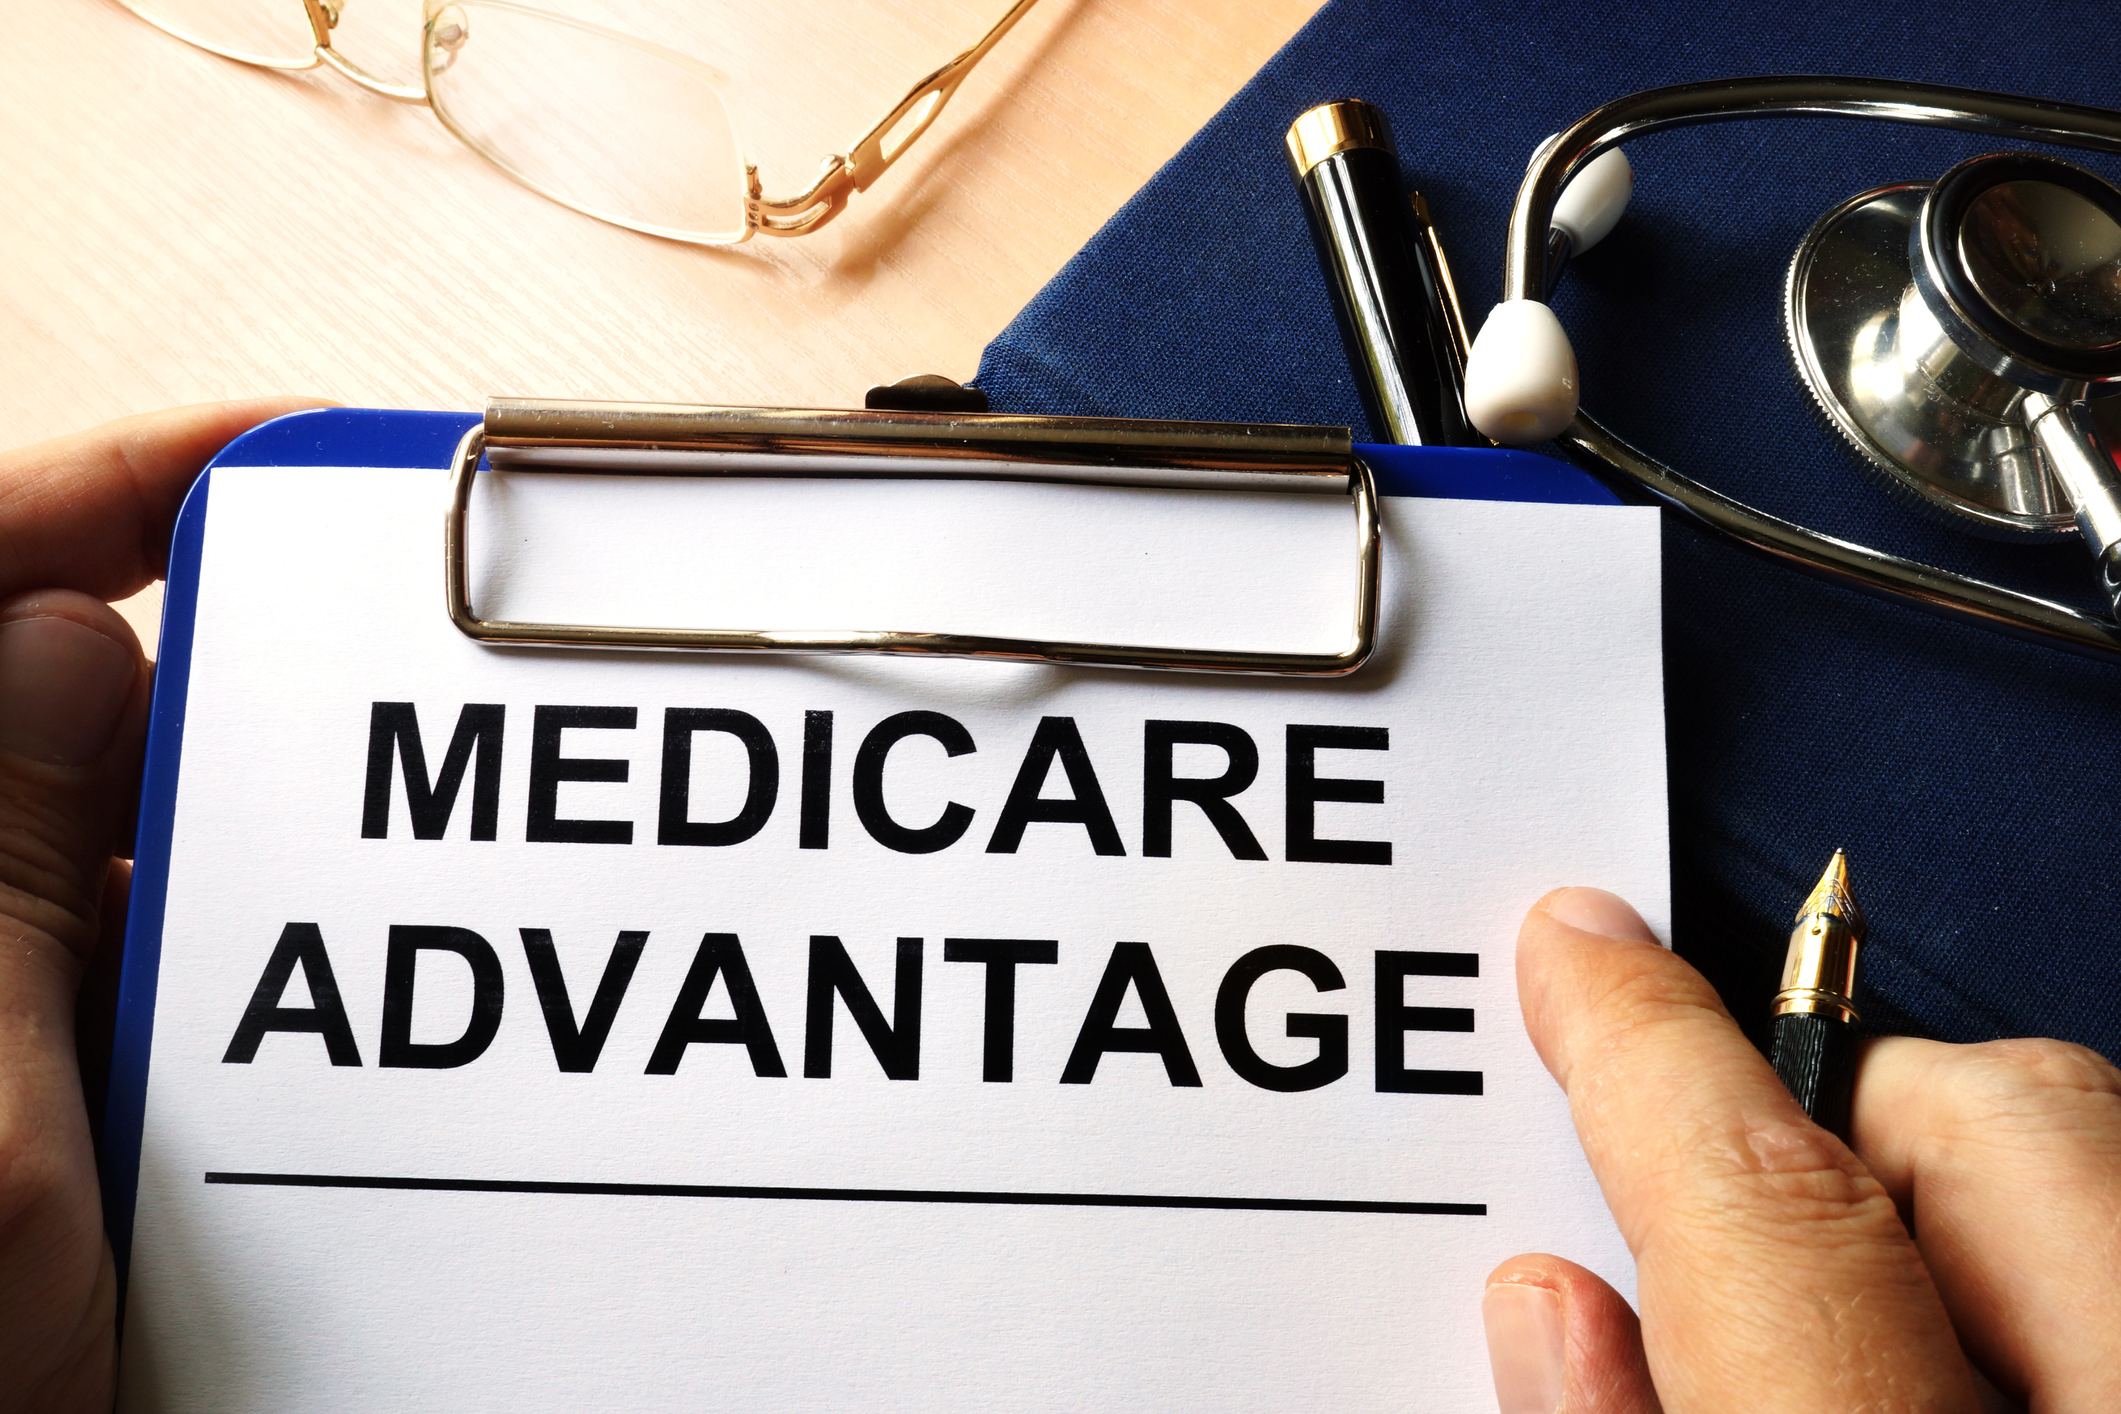 Medicare advantage in a clipboard. Health care insurance concept.